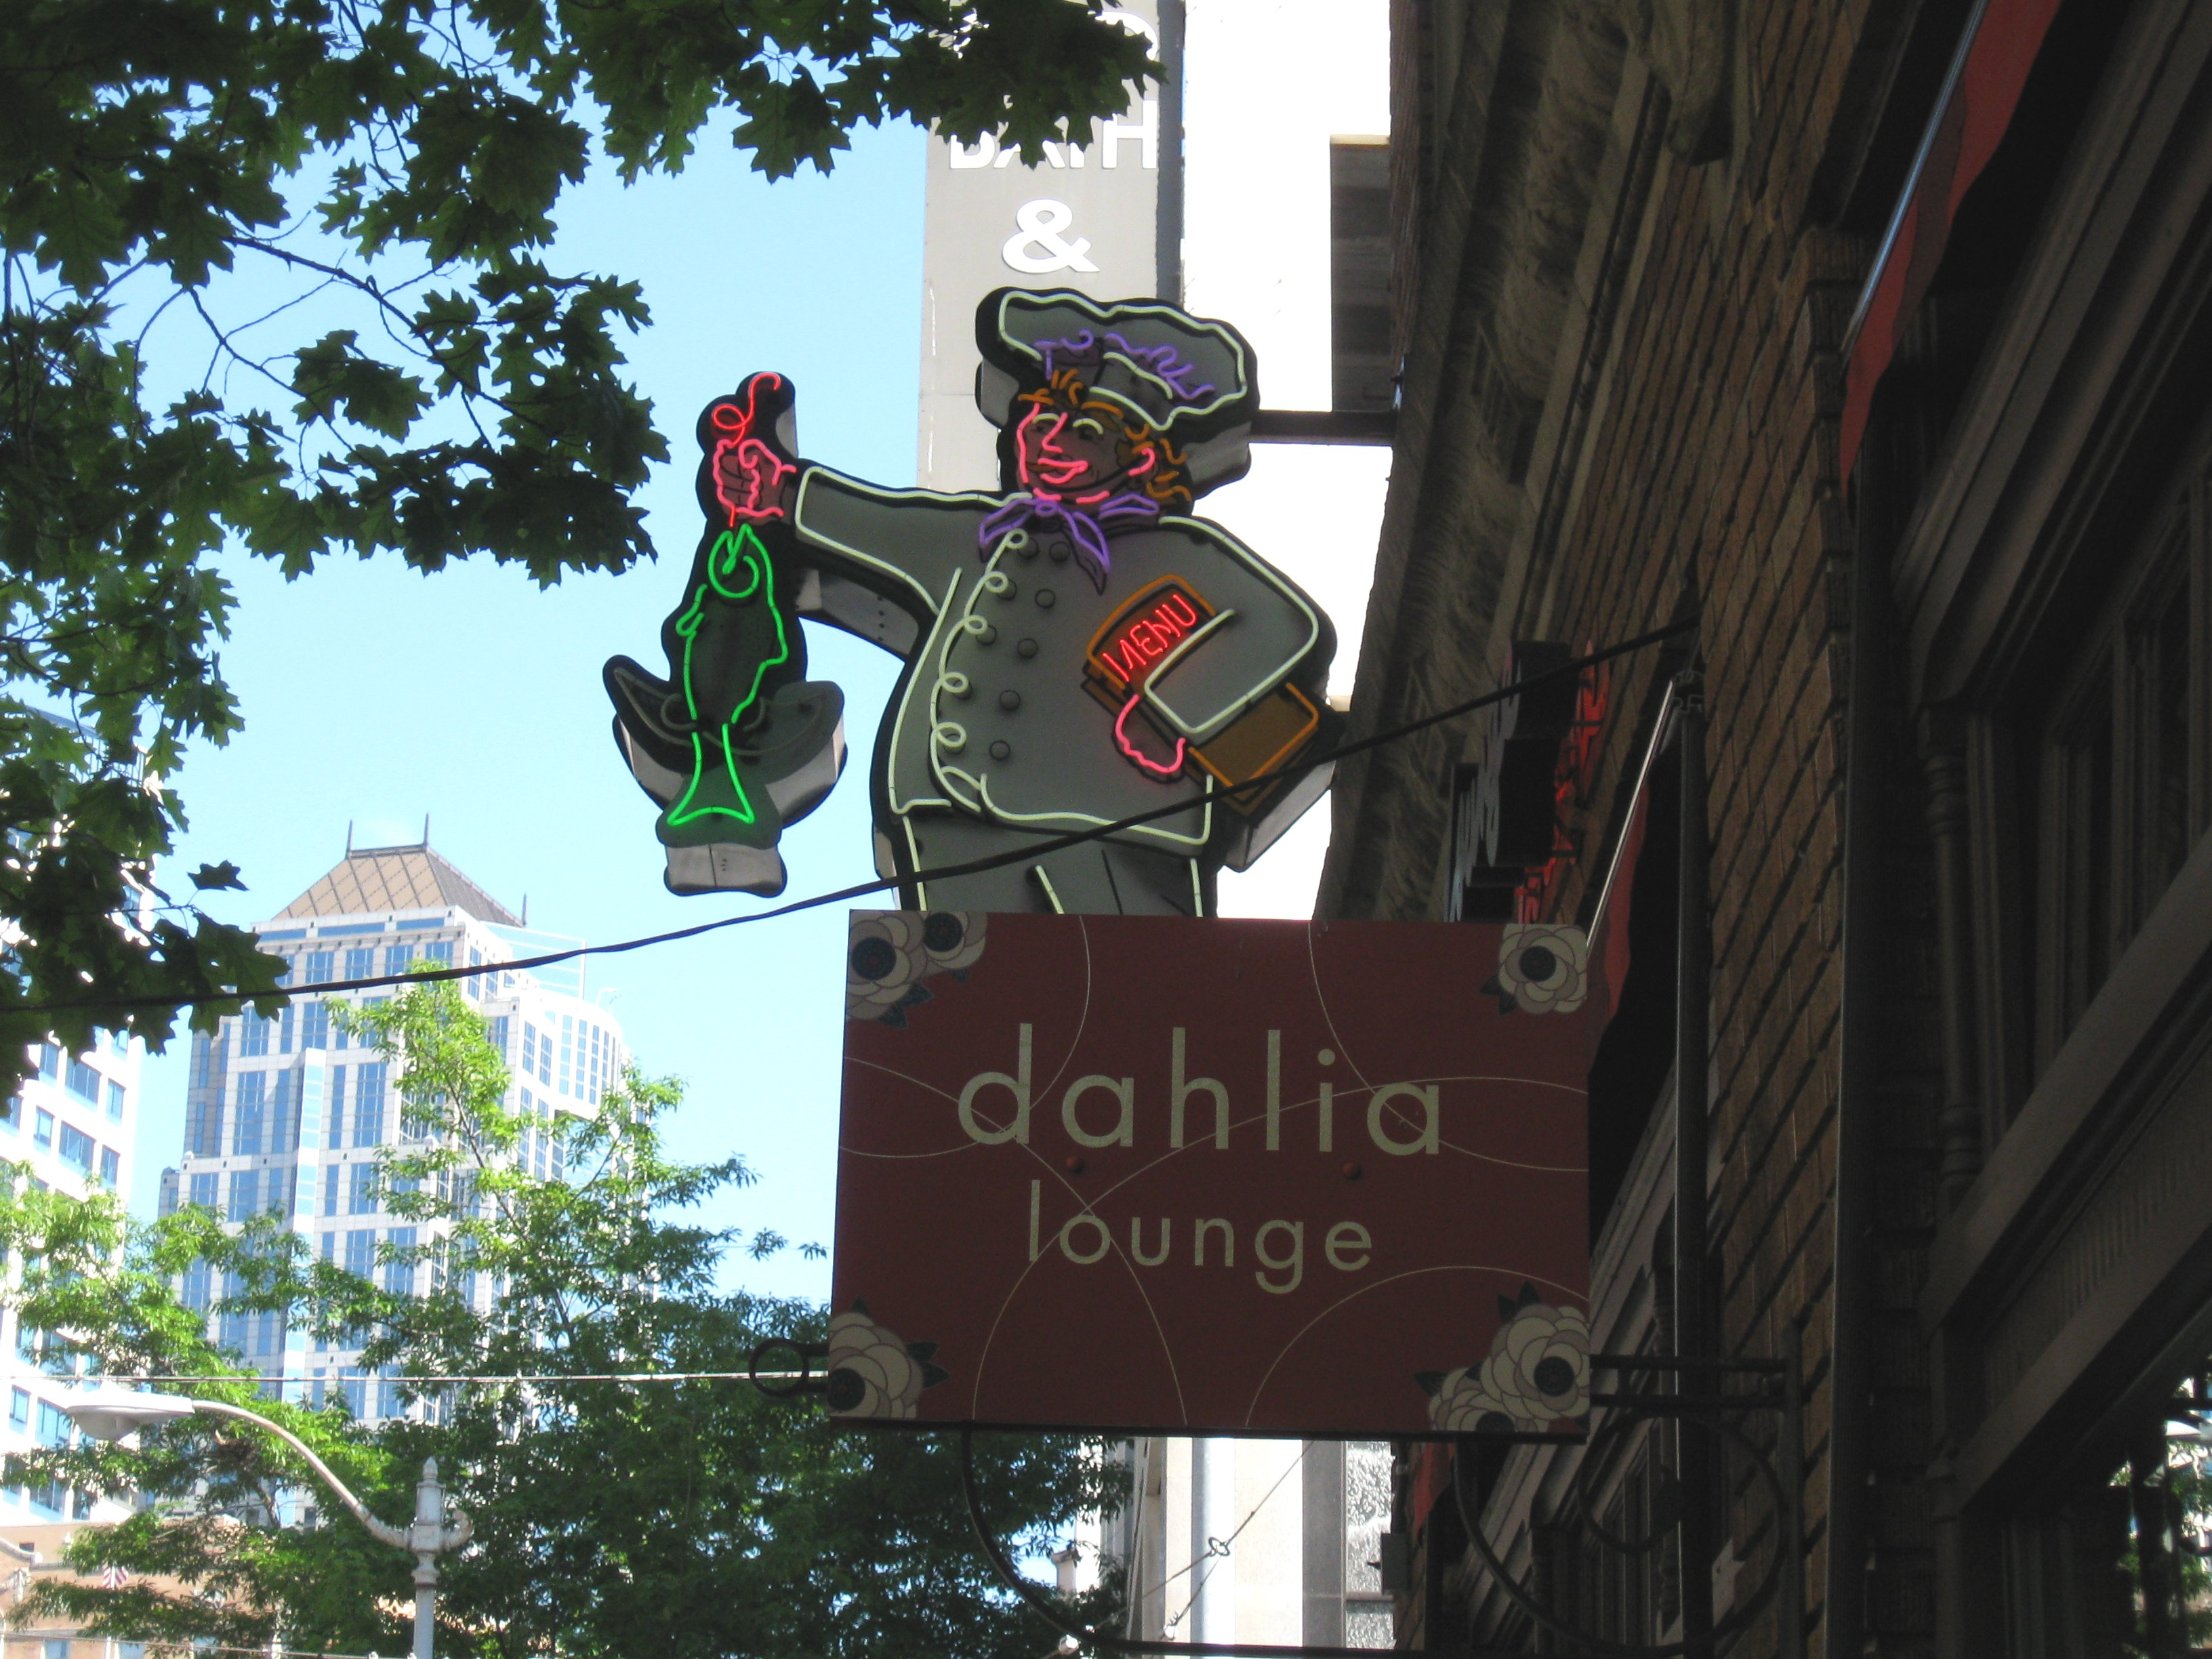 The famed neon sign —with a chef holding a fish — outside Dahlia Lounge in downtown Seattle